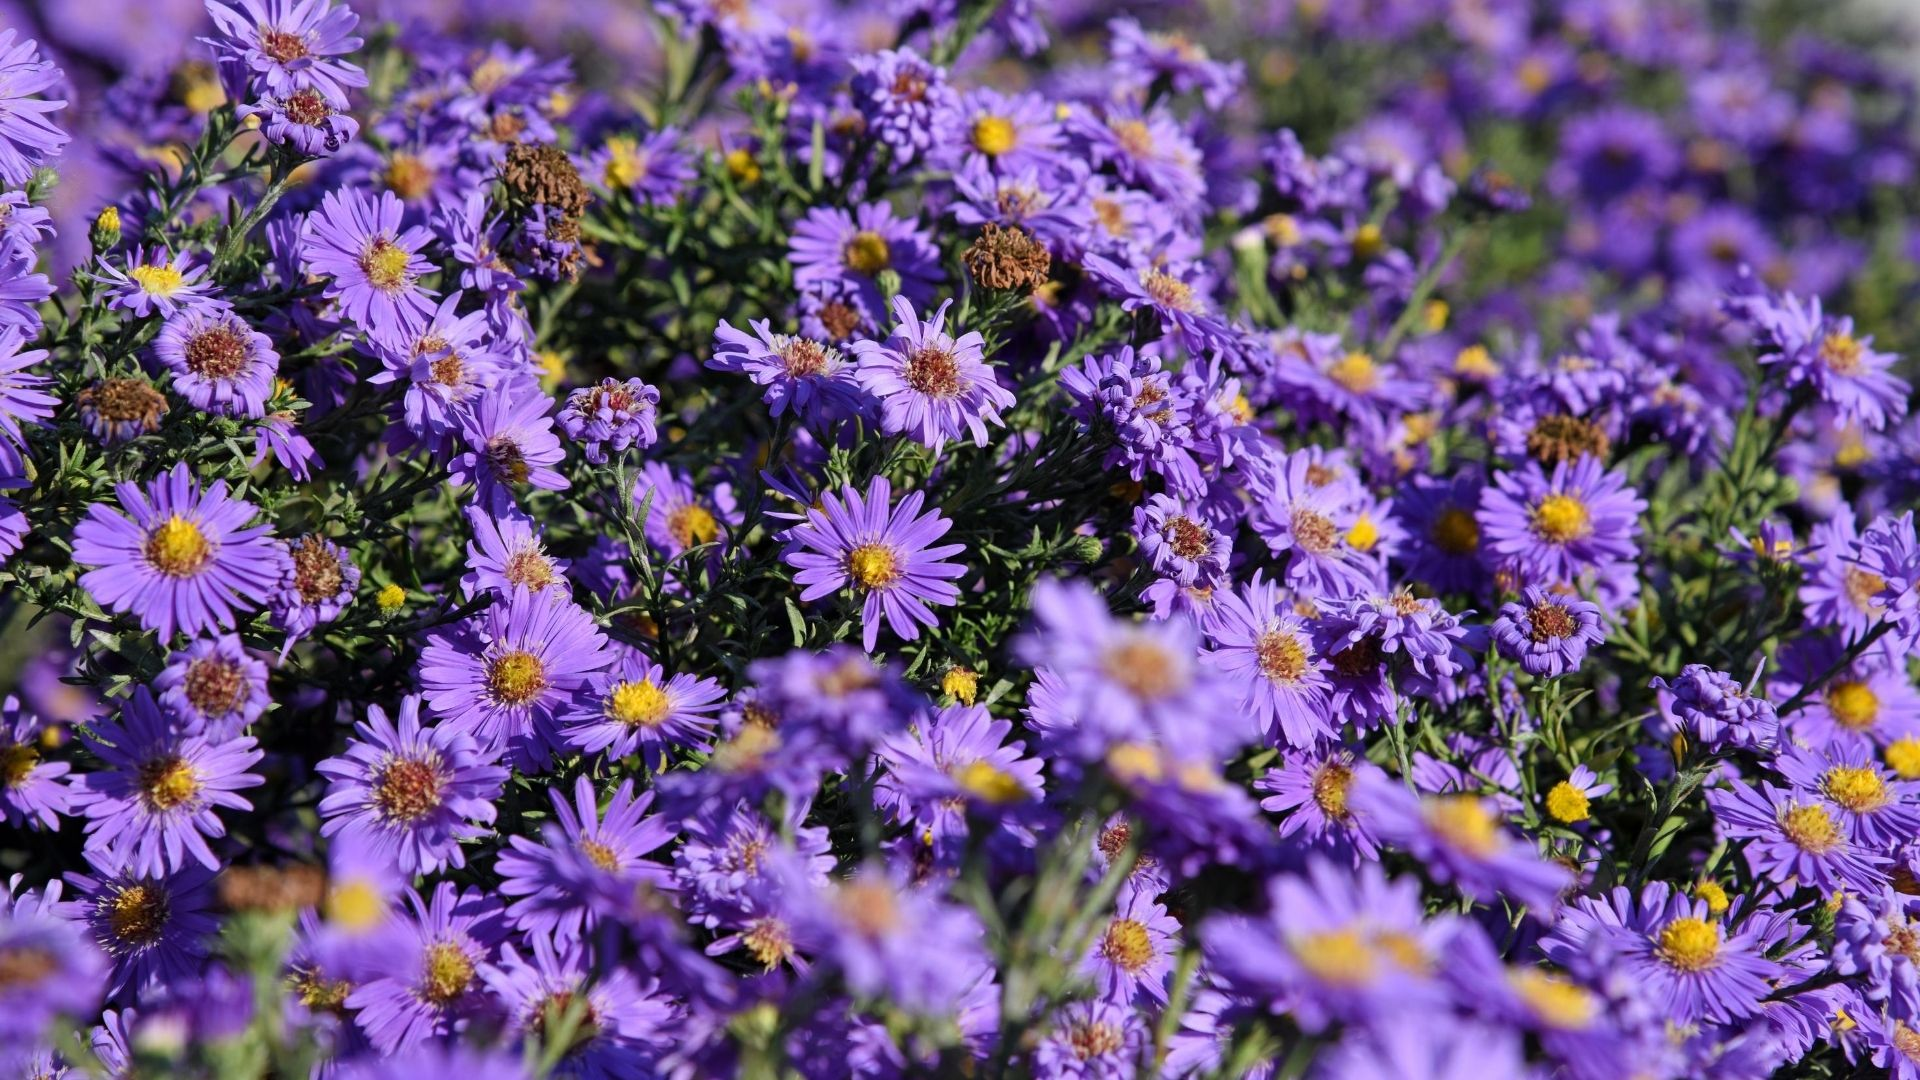 Close up of several Aster Amellus flowers in full bloom.